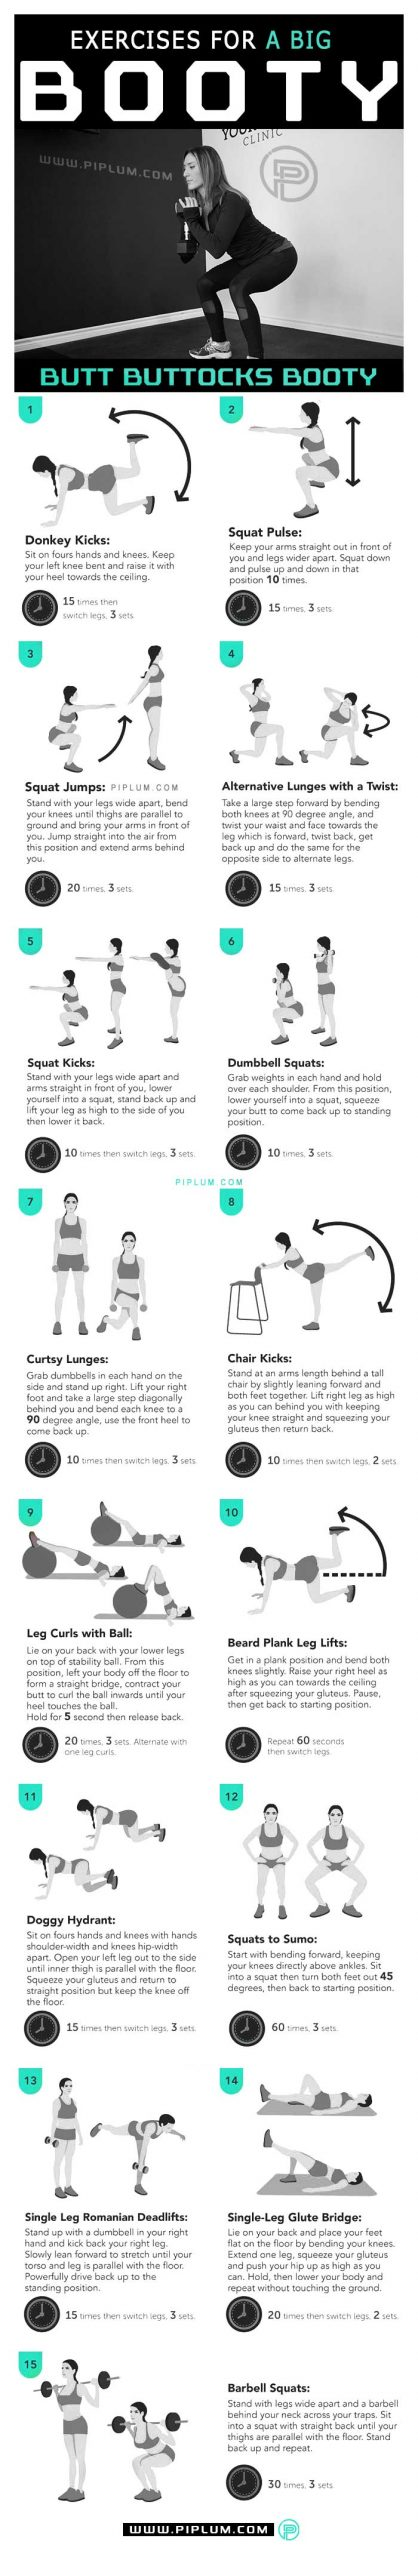 Exercises-For-A-Big-Booty-Shape-Your-Body-With-These-Butt-Exercises-For-Women-routine-poster